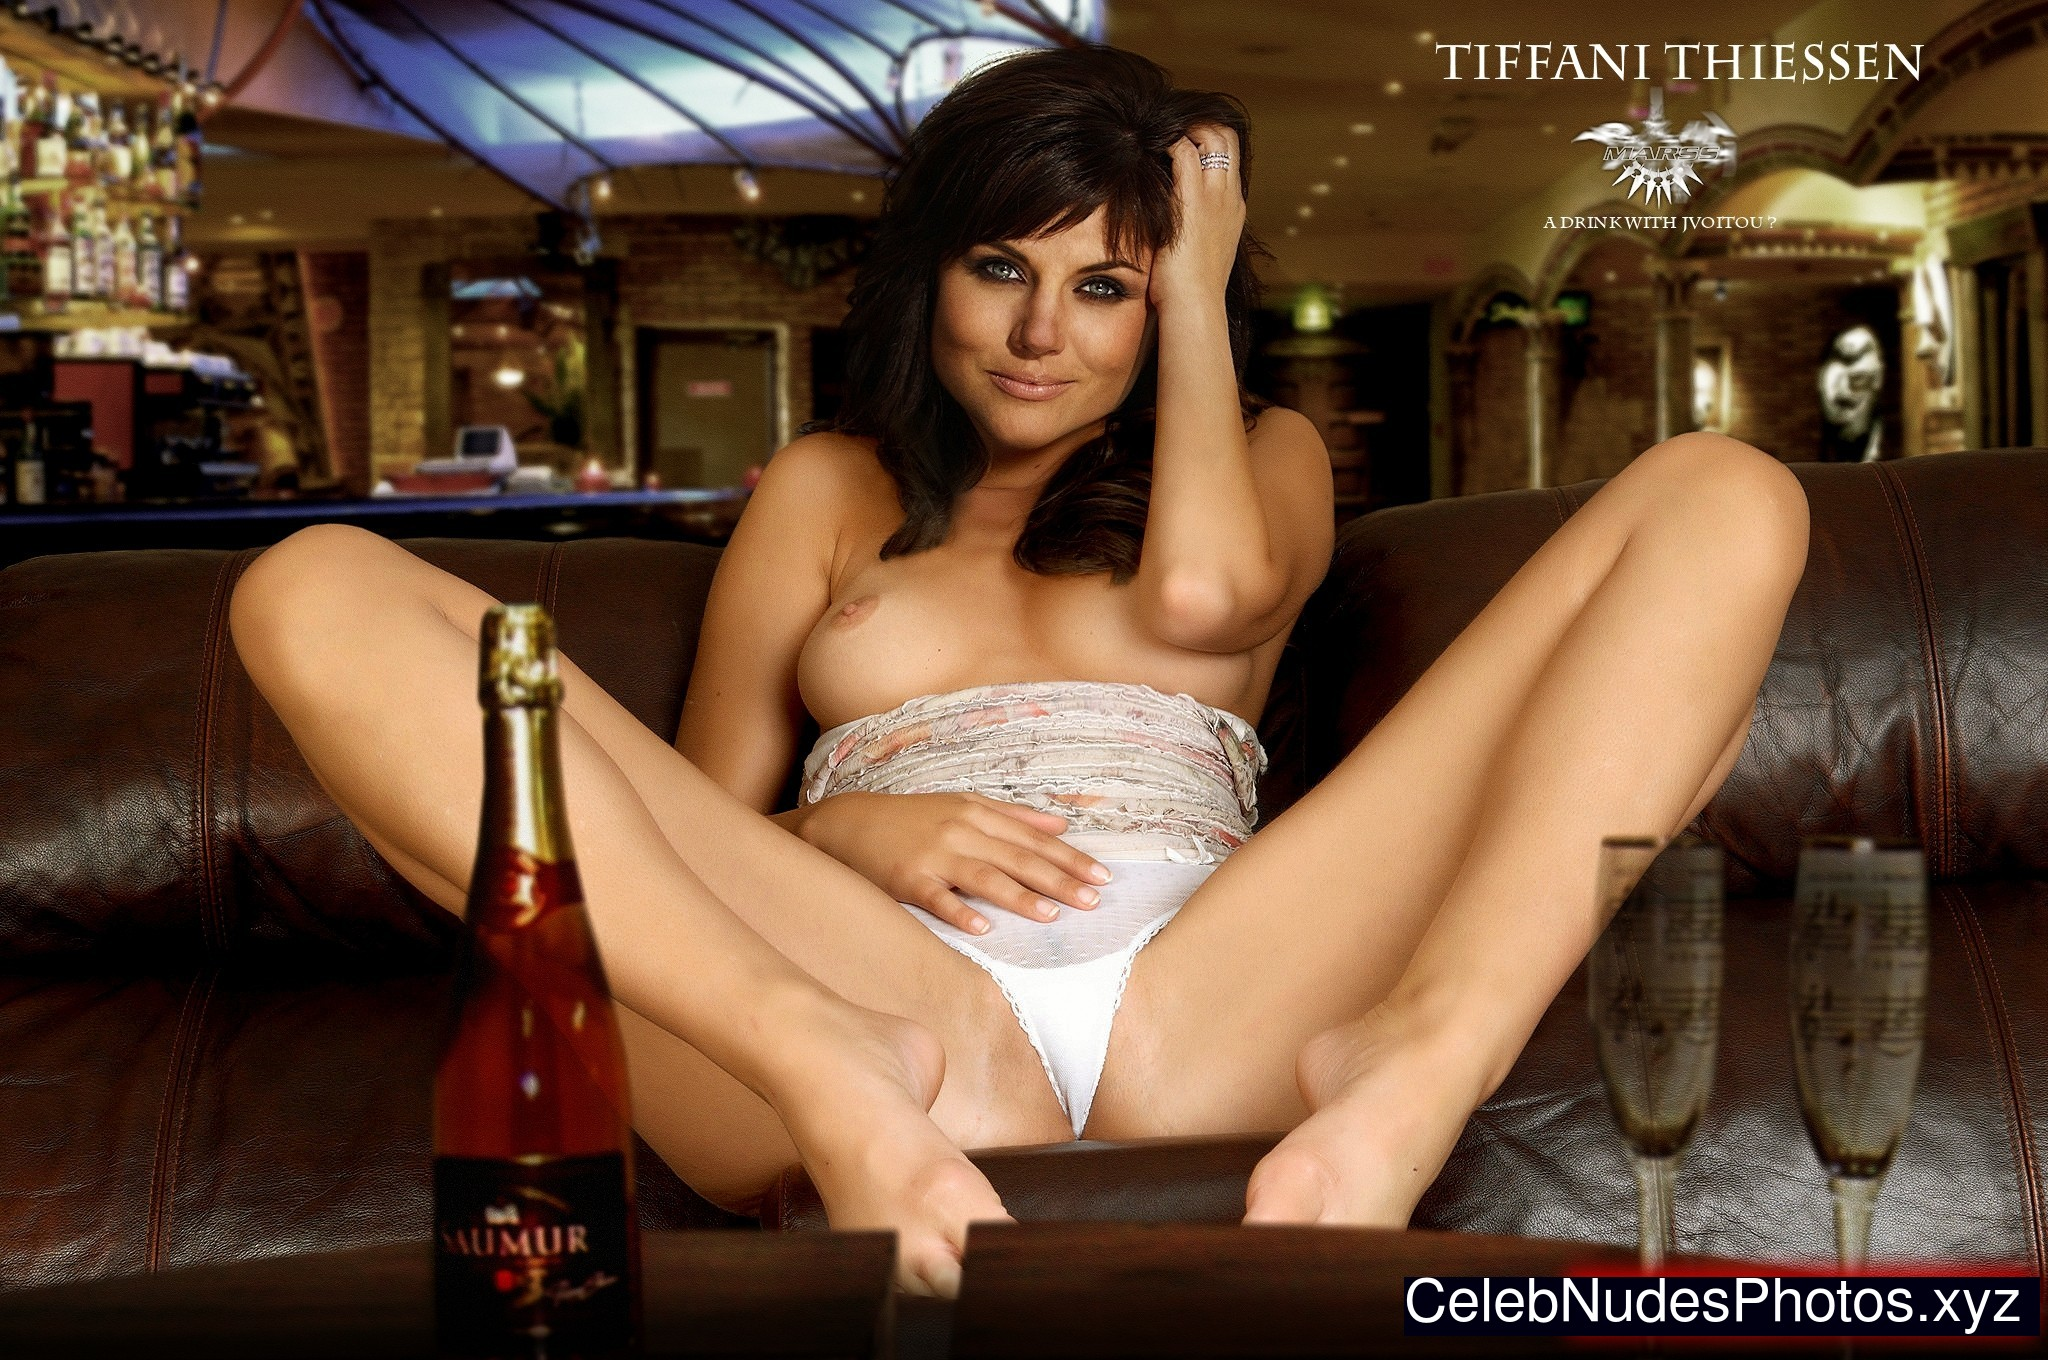 You the tiffani amber thiessen hot nude think